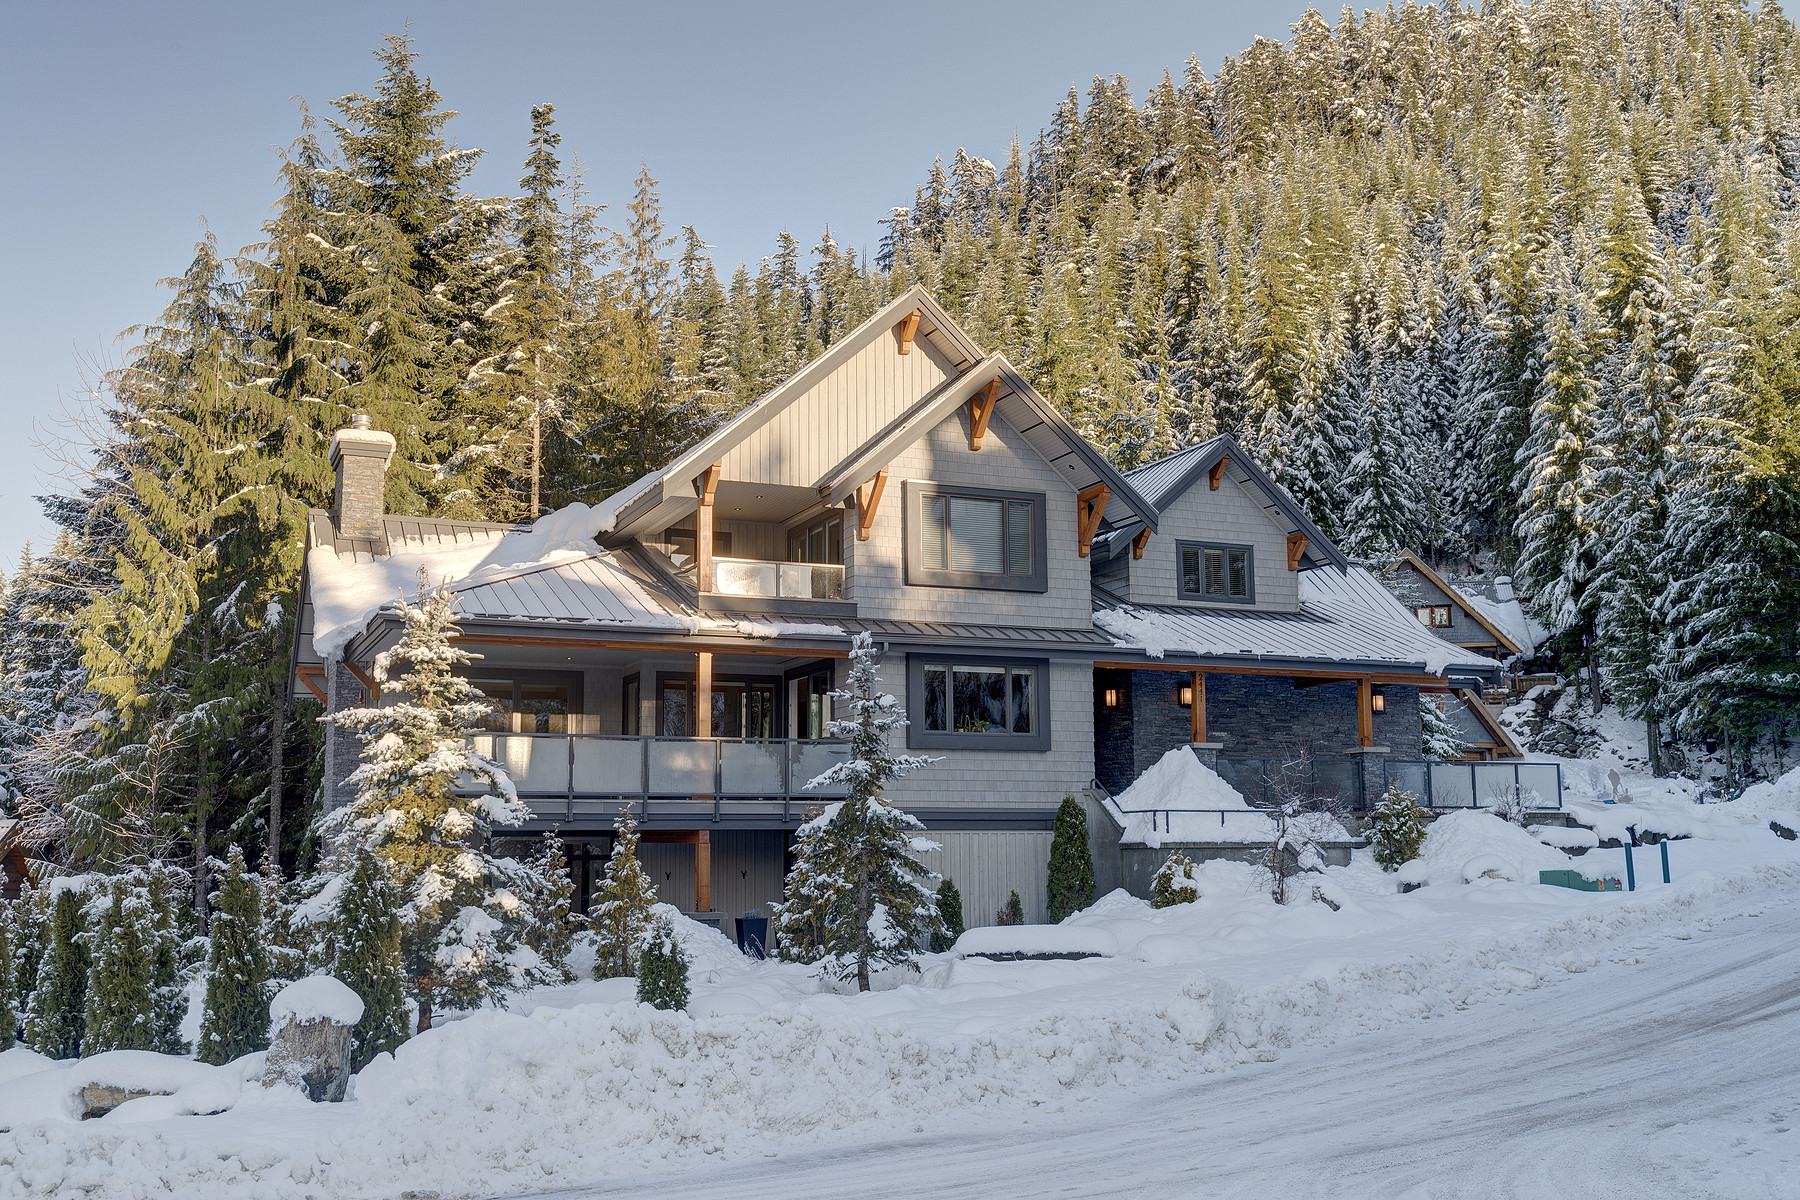 Single Family Home for Sale at Ursa Minor Bear Creek Estates 2441 Snow Valley Place Whistler, British Columbia V0N 1B2 Canada